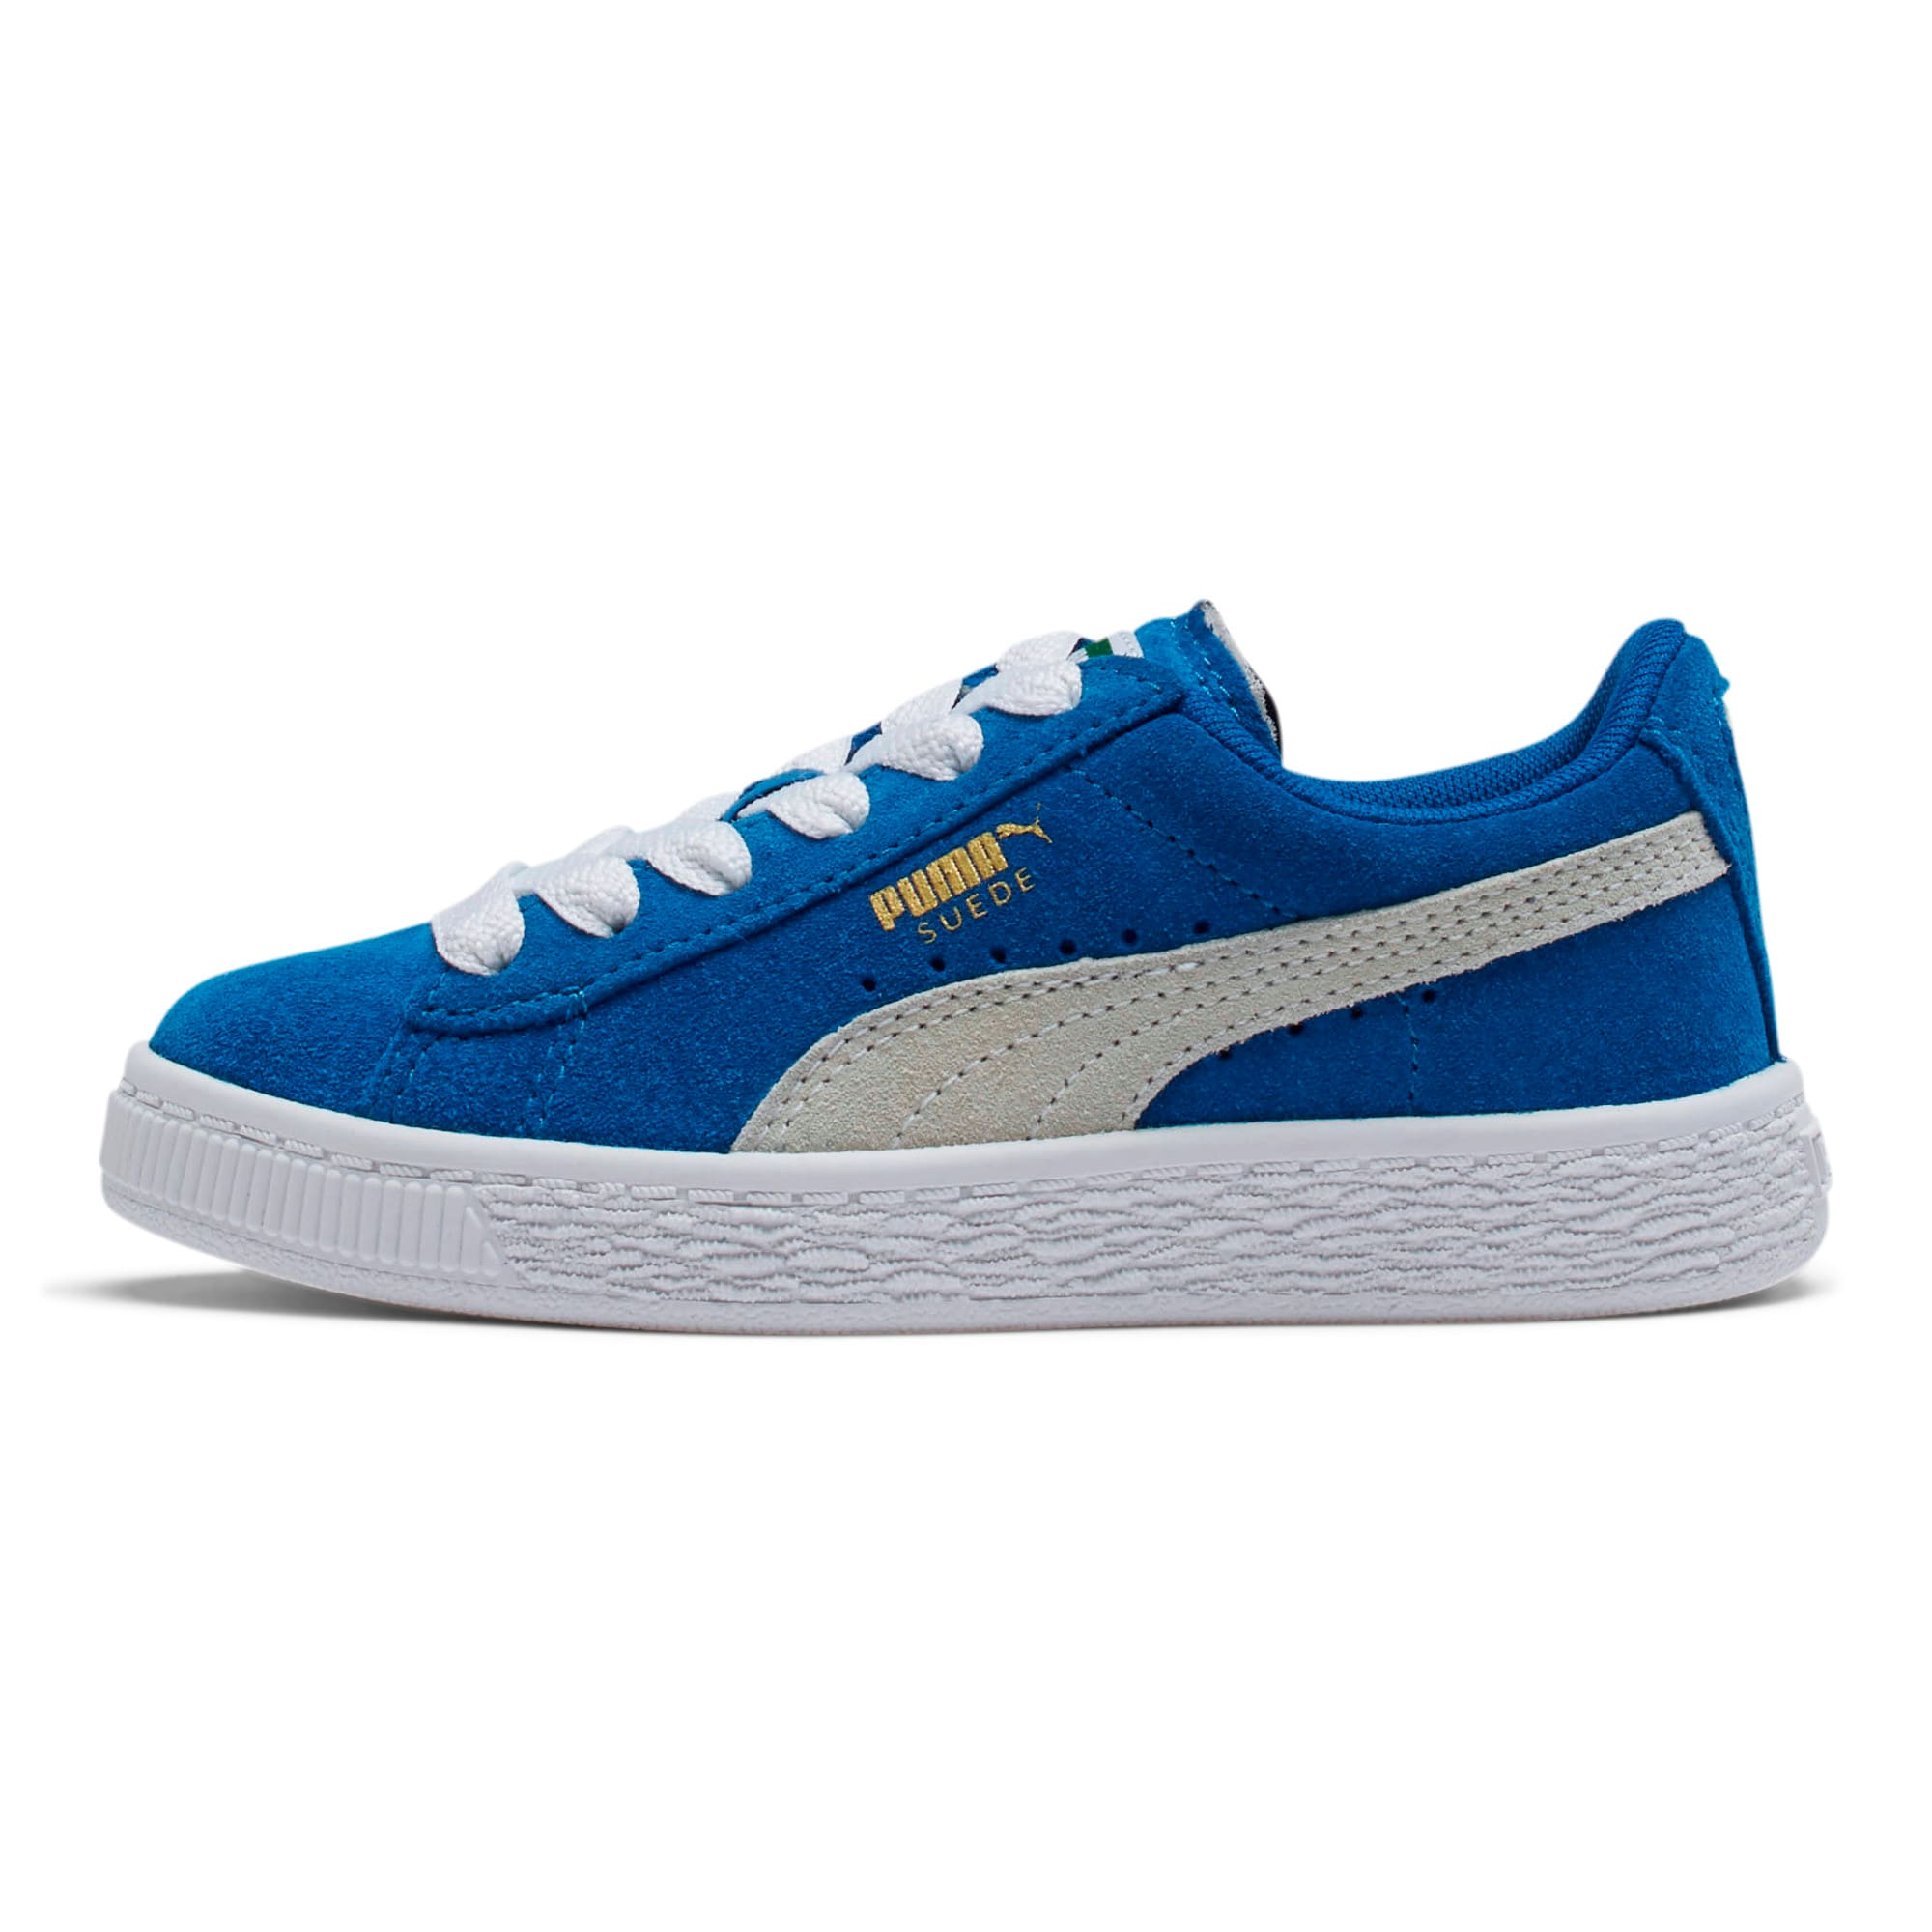 Thumbnail 1 of Suede Little Kids' Shoes, Snorkel Blue-Puma White, medium